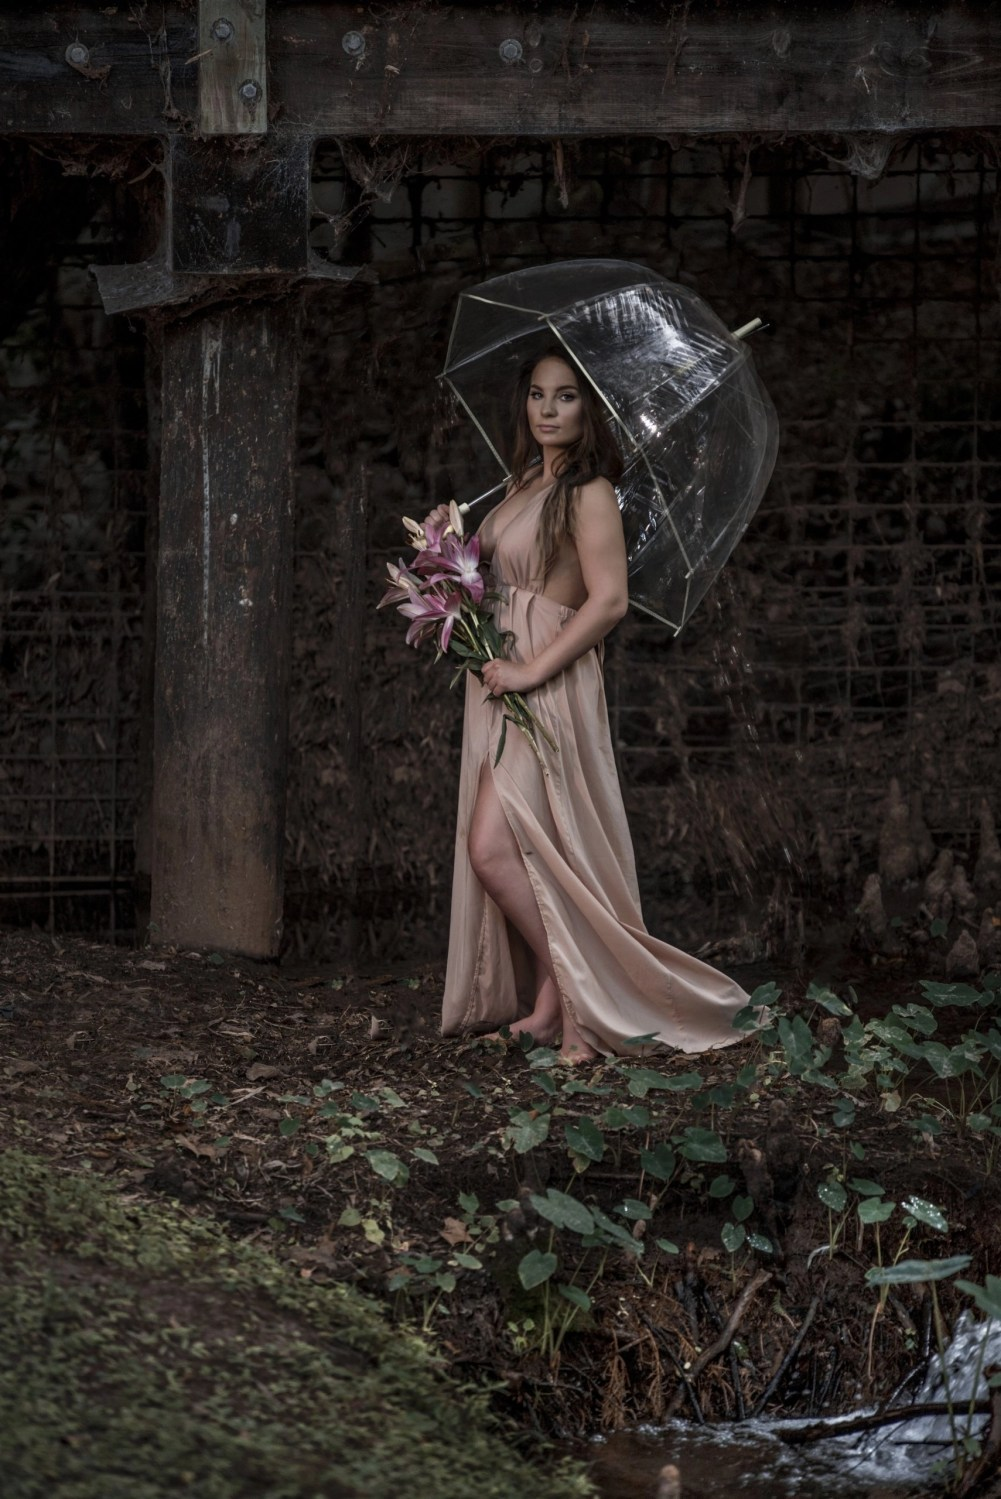 brunette in pink dress holding umbrella and flowers senior photography session